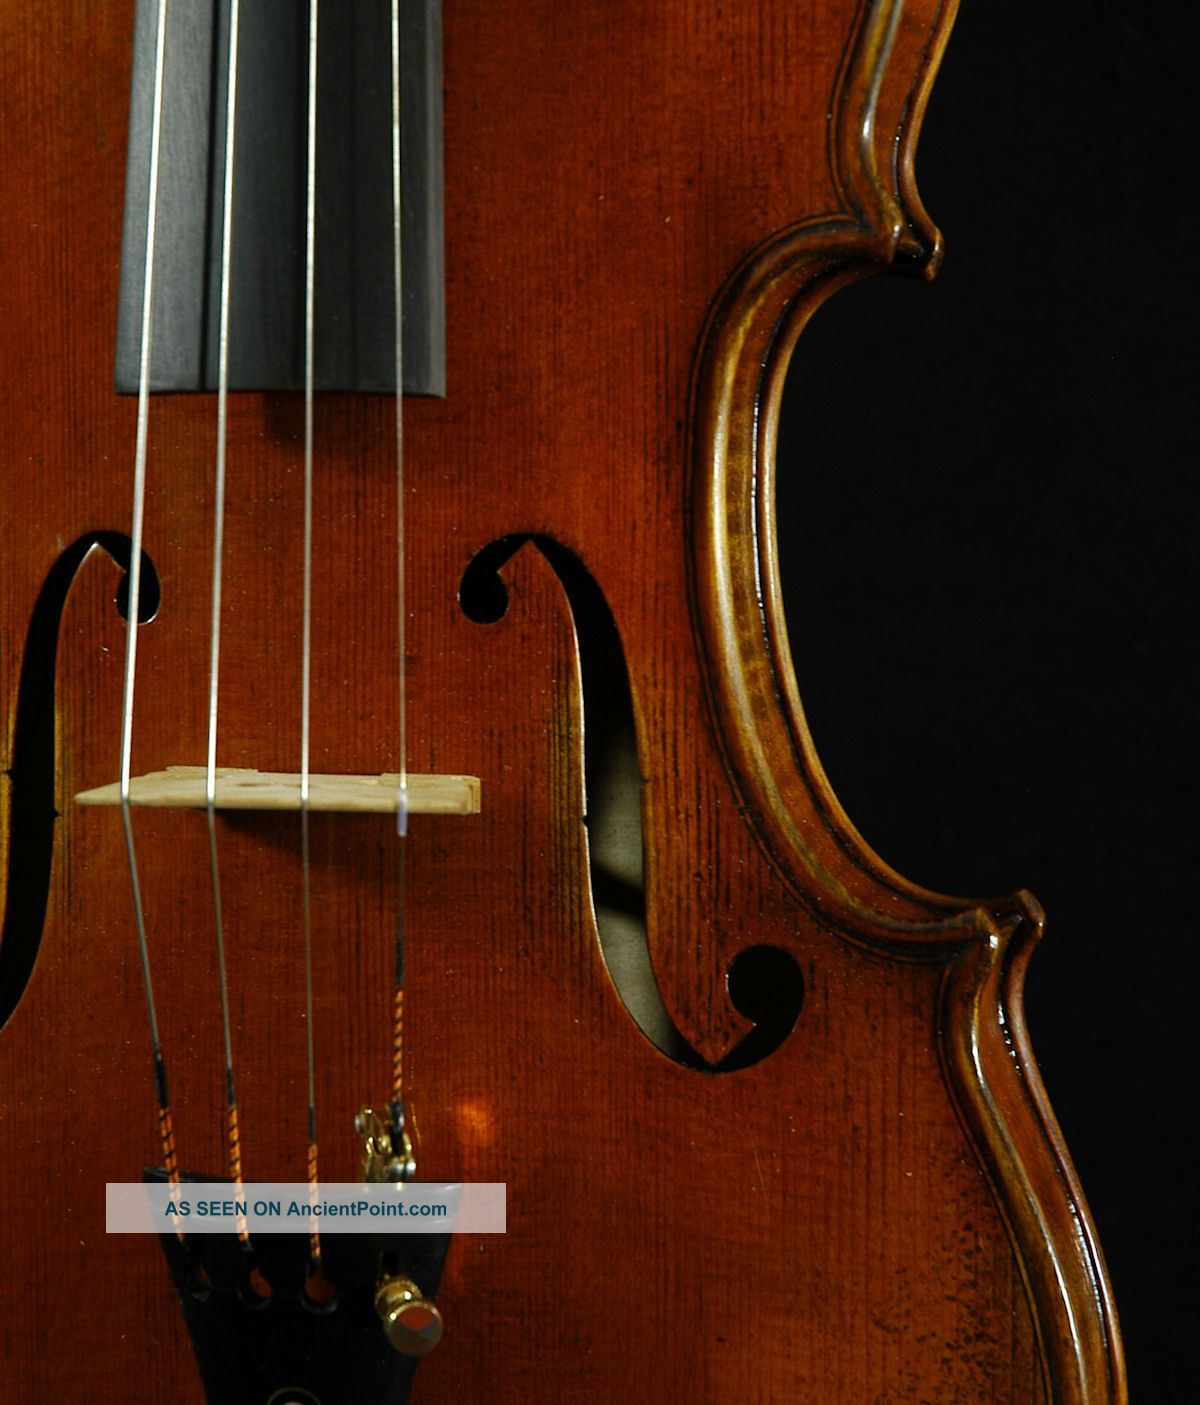 Tumblr Violin Photography , Violin Black And White Photography , Cool ...: galleryhip.com/antique-violin-photography.html